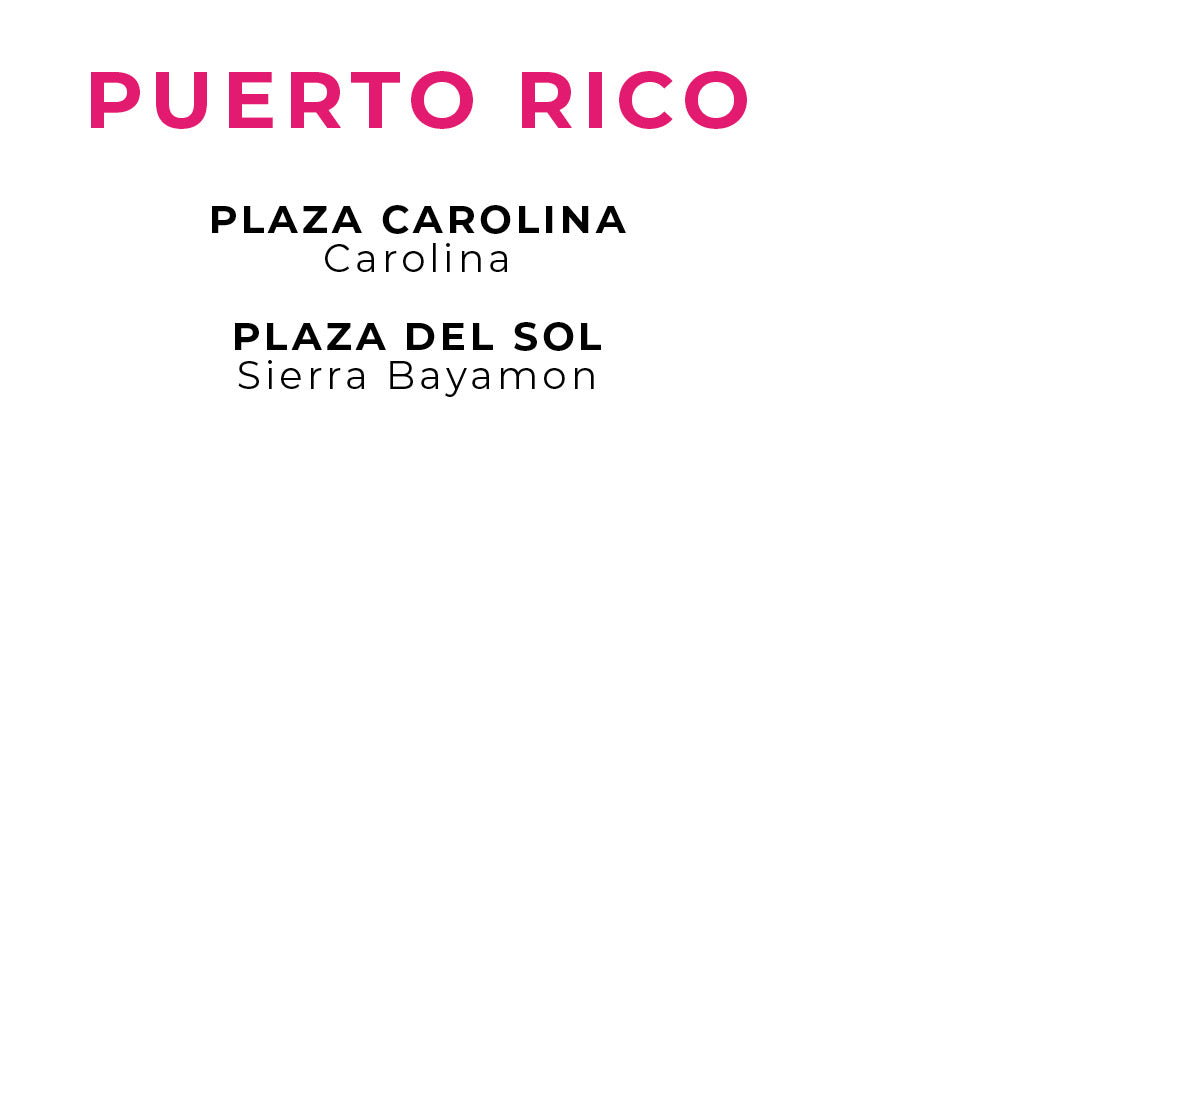 Charlotte Russe | Store Locations - Puerto Rico